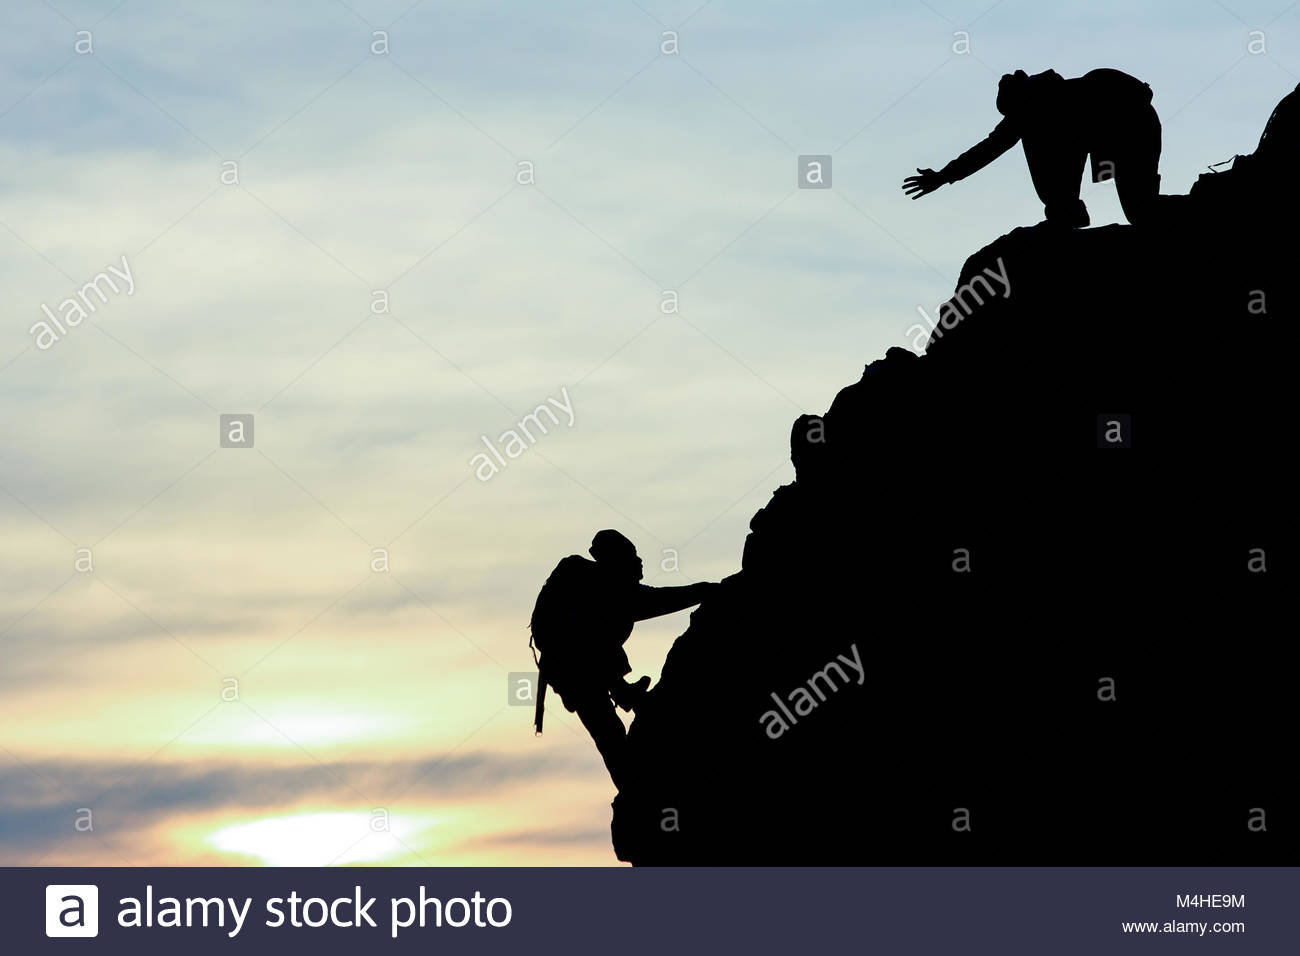 mountaineering help and support - Stock Image